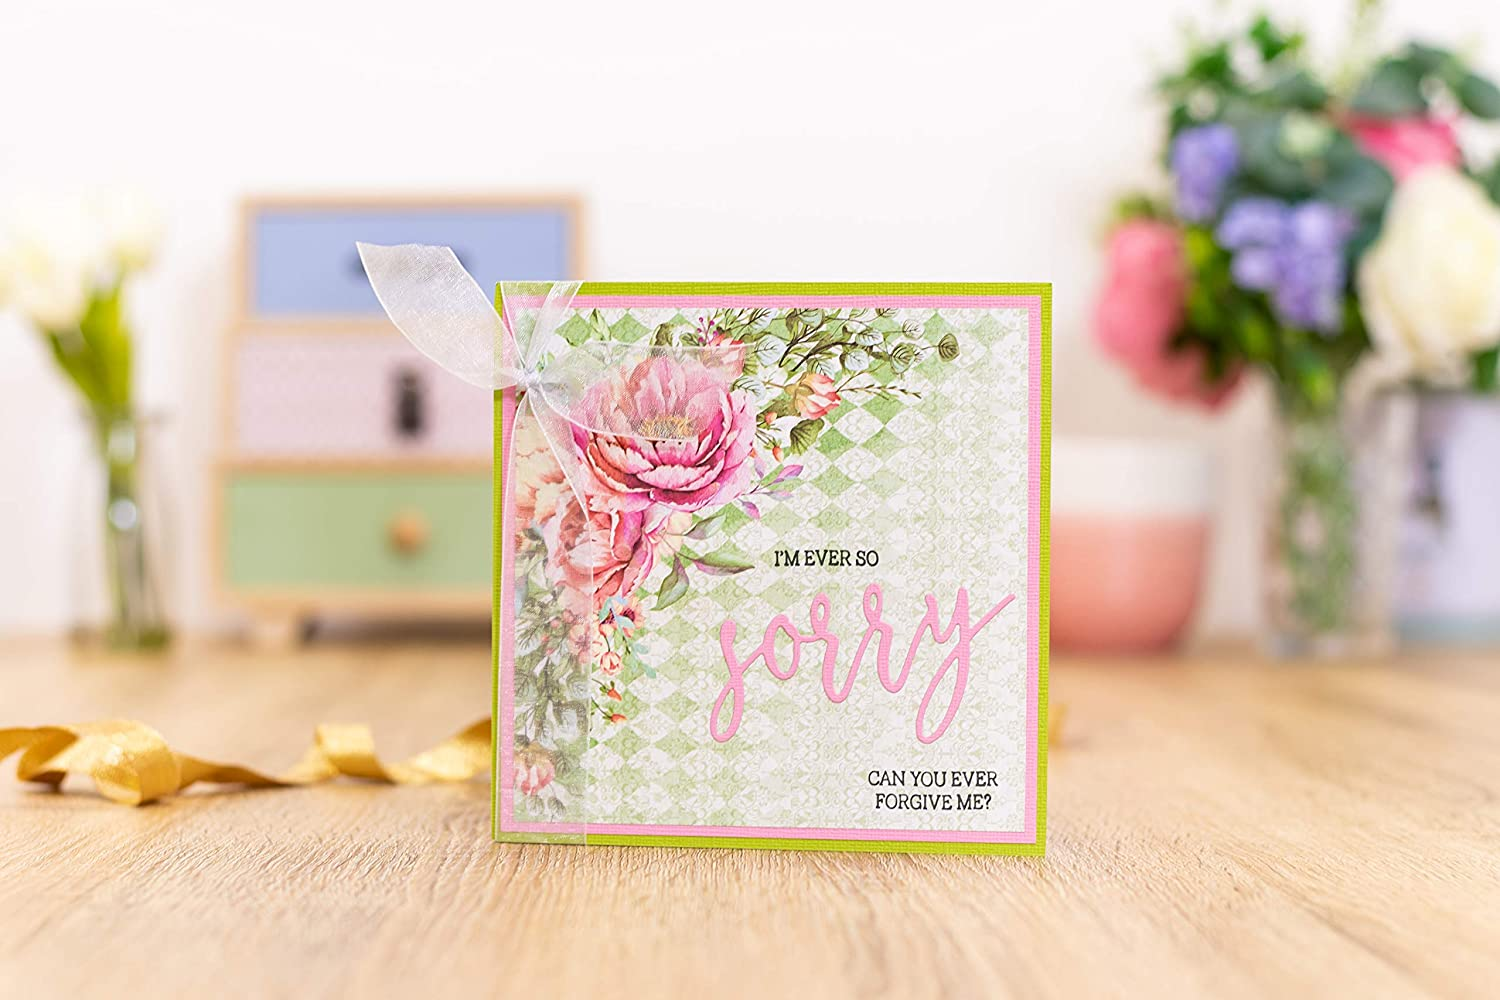 Crafters Companion GEM-STD-WIDS Gemini Fancy Font Stamp /& Die Set with Deepest Sympathy Nylon//a us:one Size